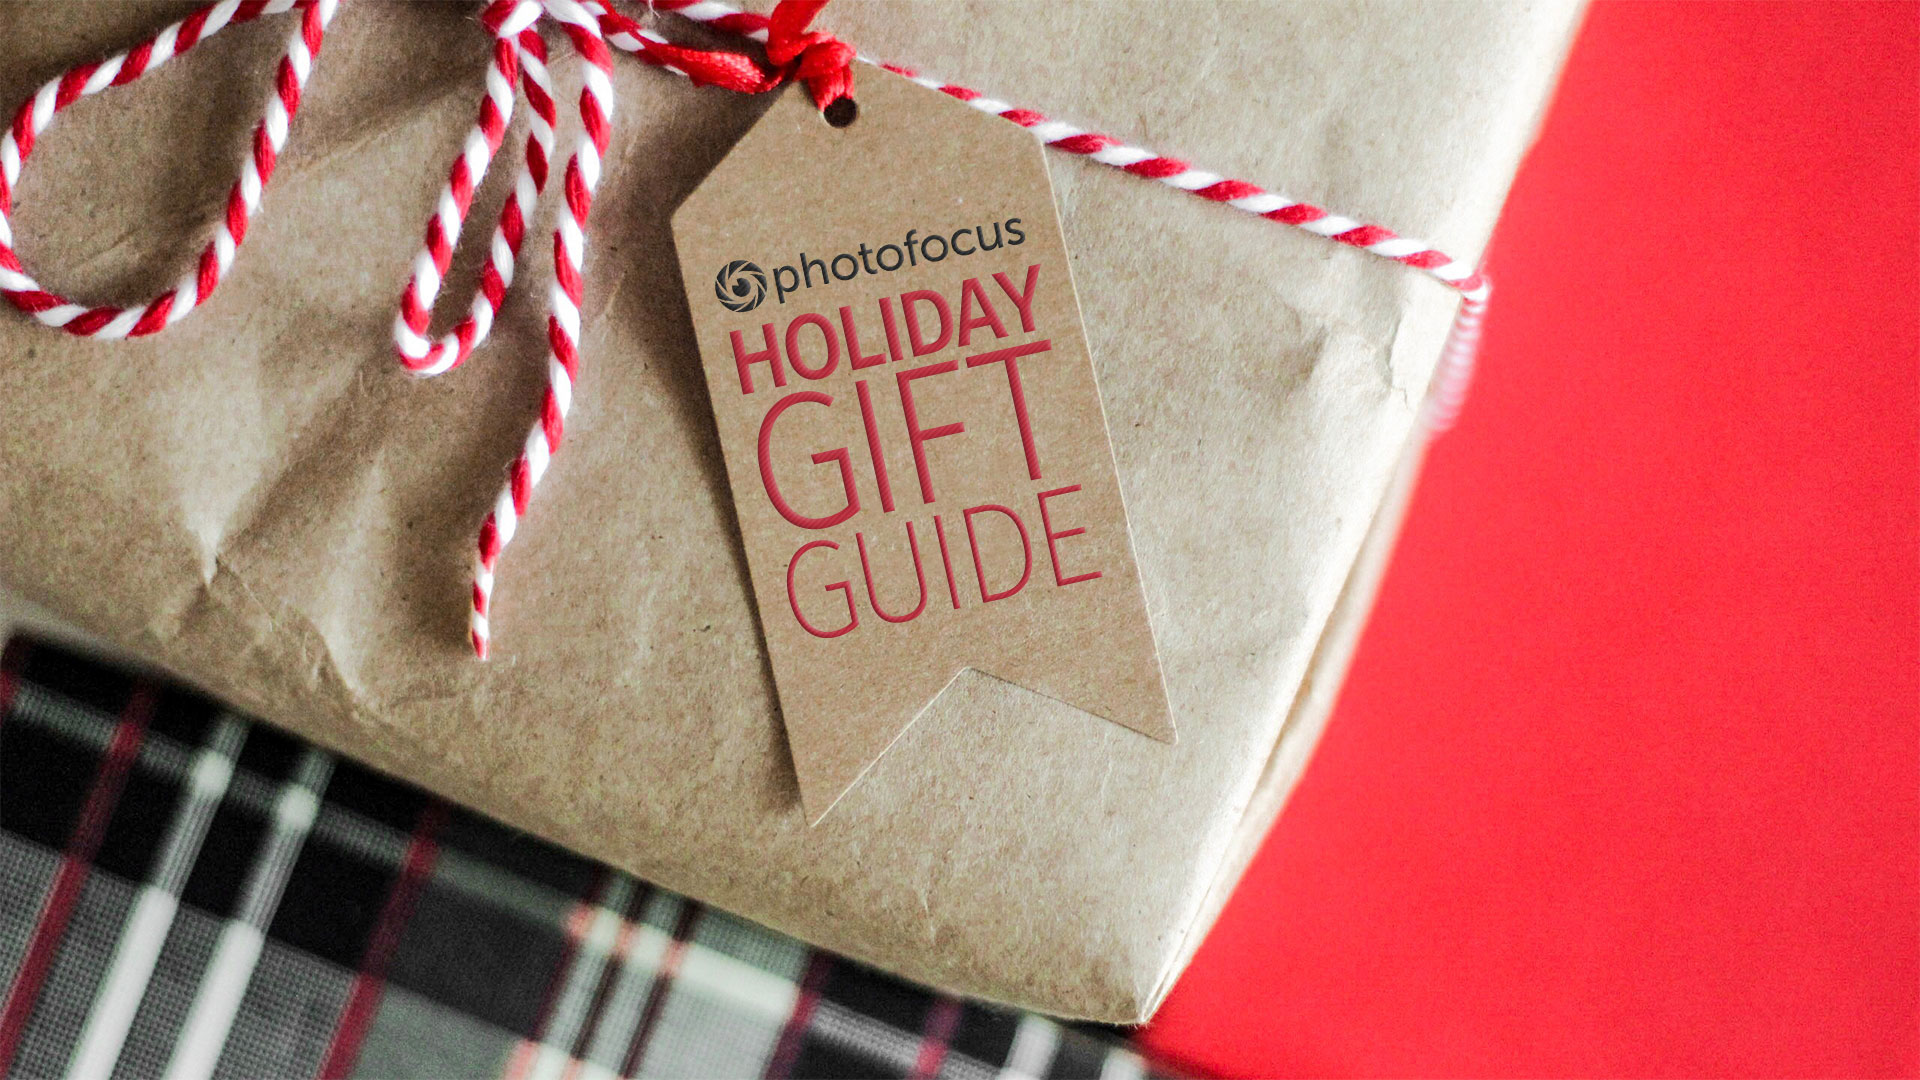 2018 Holiday Gift Guide: Gifts under $25 | Photofocus